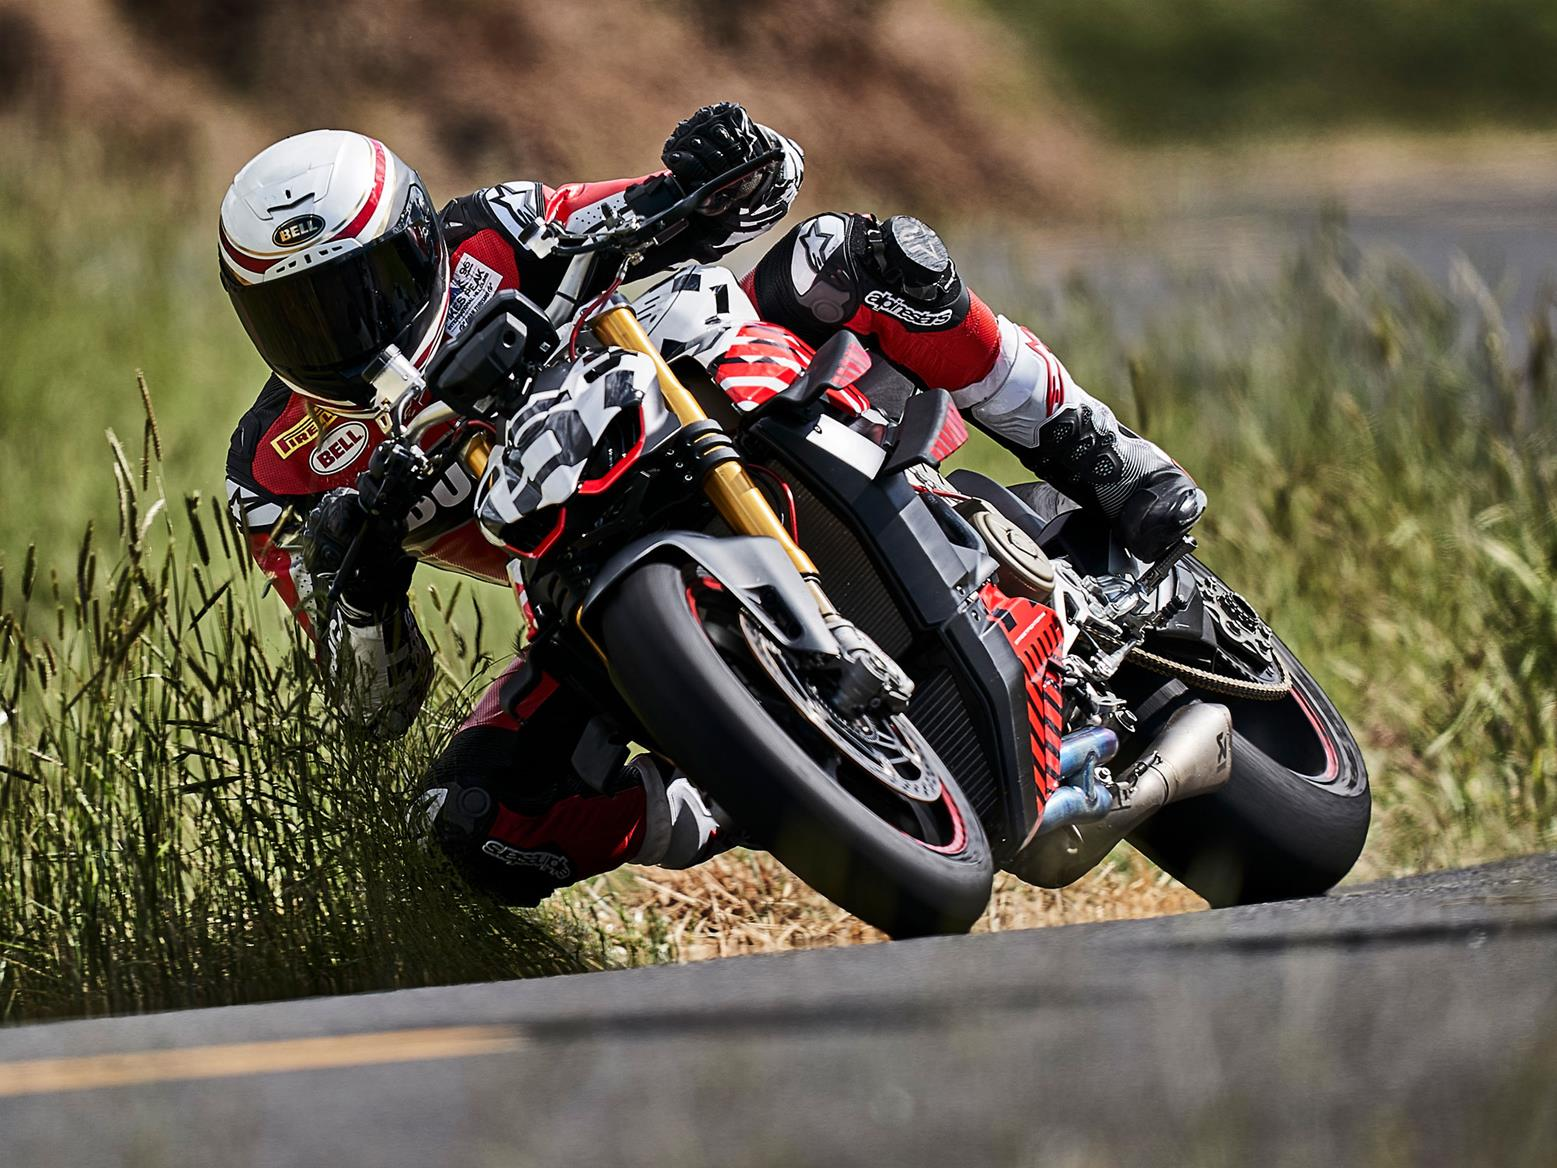 The Ducati Streetfighter V4 prototype in action